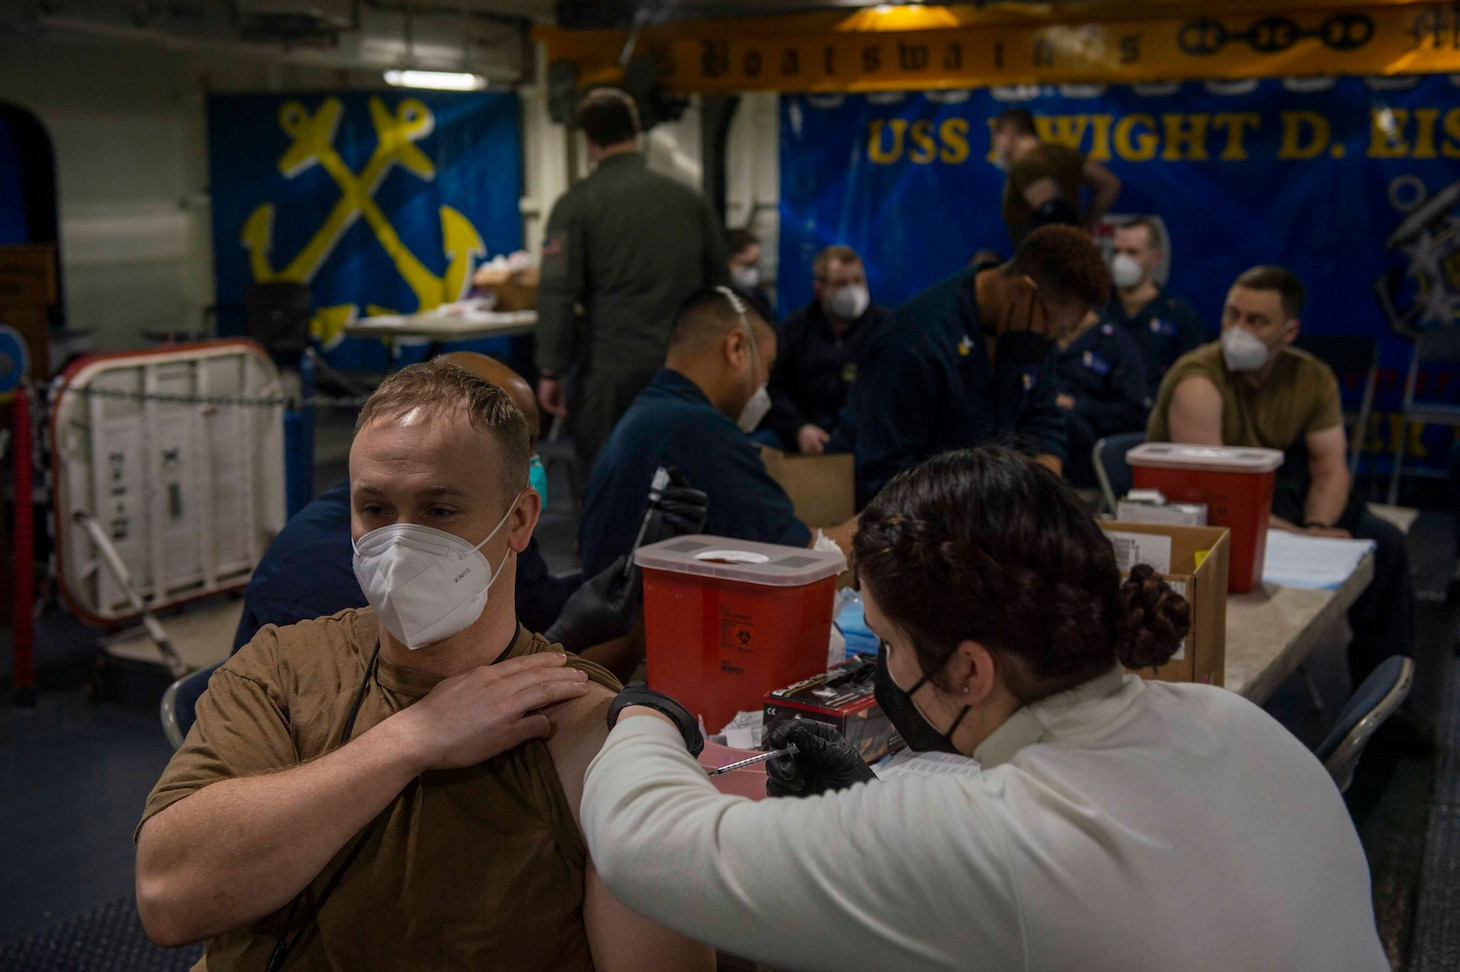 210311-N-MW930-1013 MEDITERRANEAN SEA (March 11, 2021) Sailors receive a second dose of the COVID-19 vaccination aboard the Nimitz-class aircraft carrier USS Dwight D. Eisenhower (CVN 69), in the Mediterranean Sea, March 11, 2021. The IKE Carrier Strike Group is on a scheduled deployment in the U.S. Sixth Fleet area of operations in support of U.S. national interests and security in Europe and Africa.